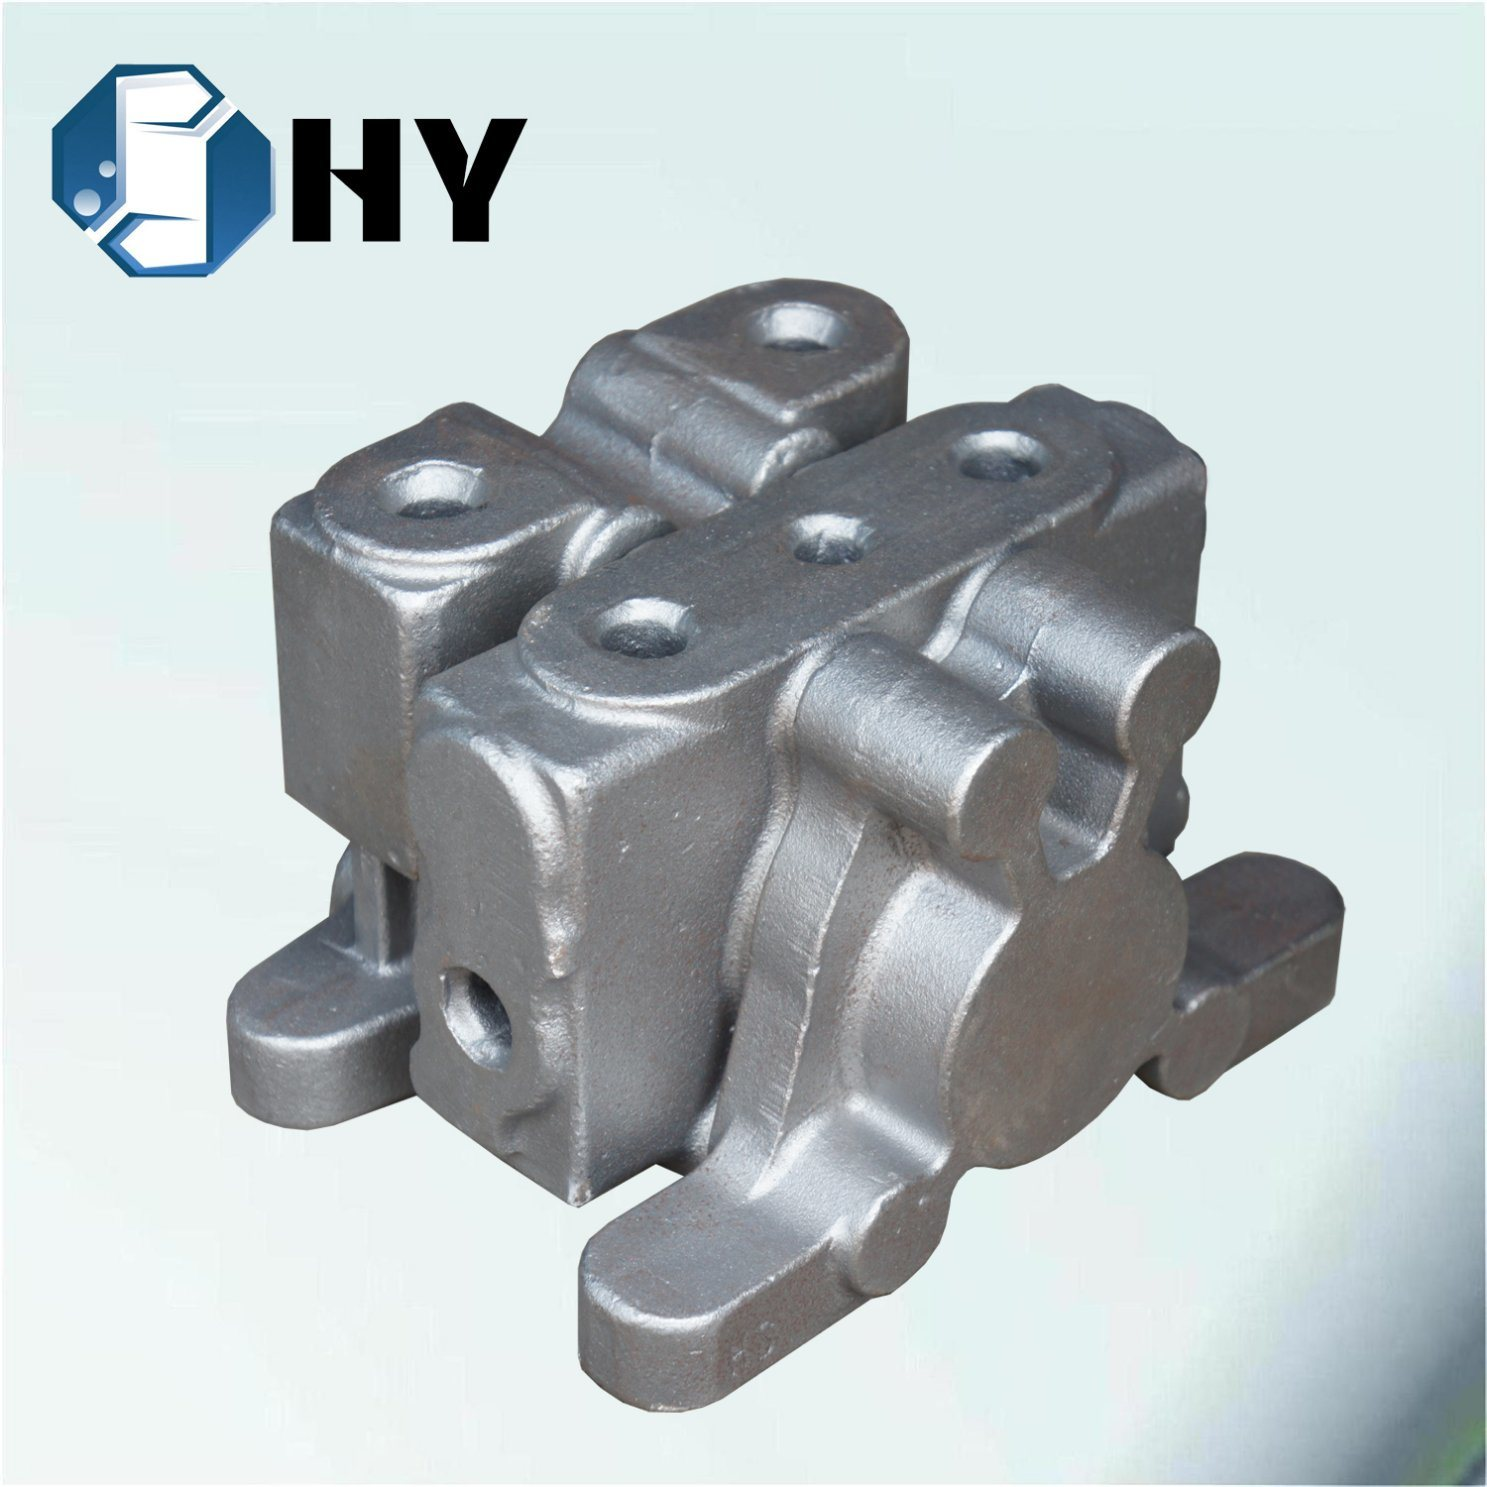 Wrought Cast Iron Sand Casting for Valve Pump Motor Parts